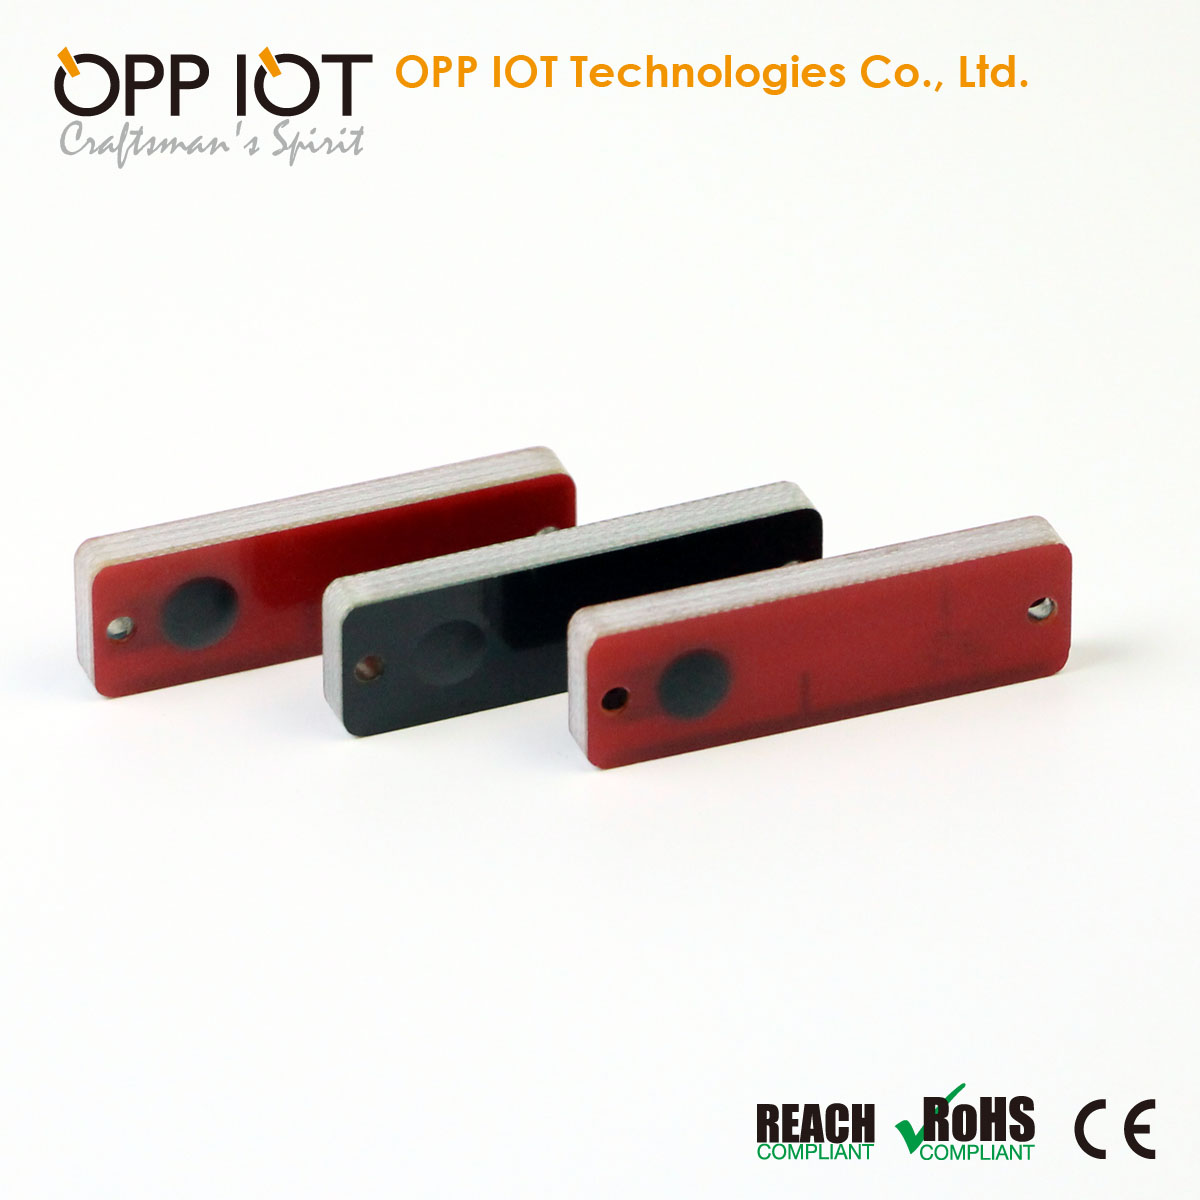 UHF RFID Industrial Automation Tracking Tag